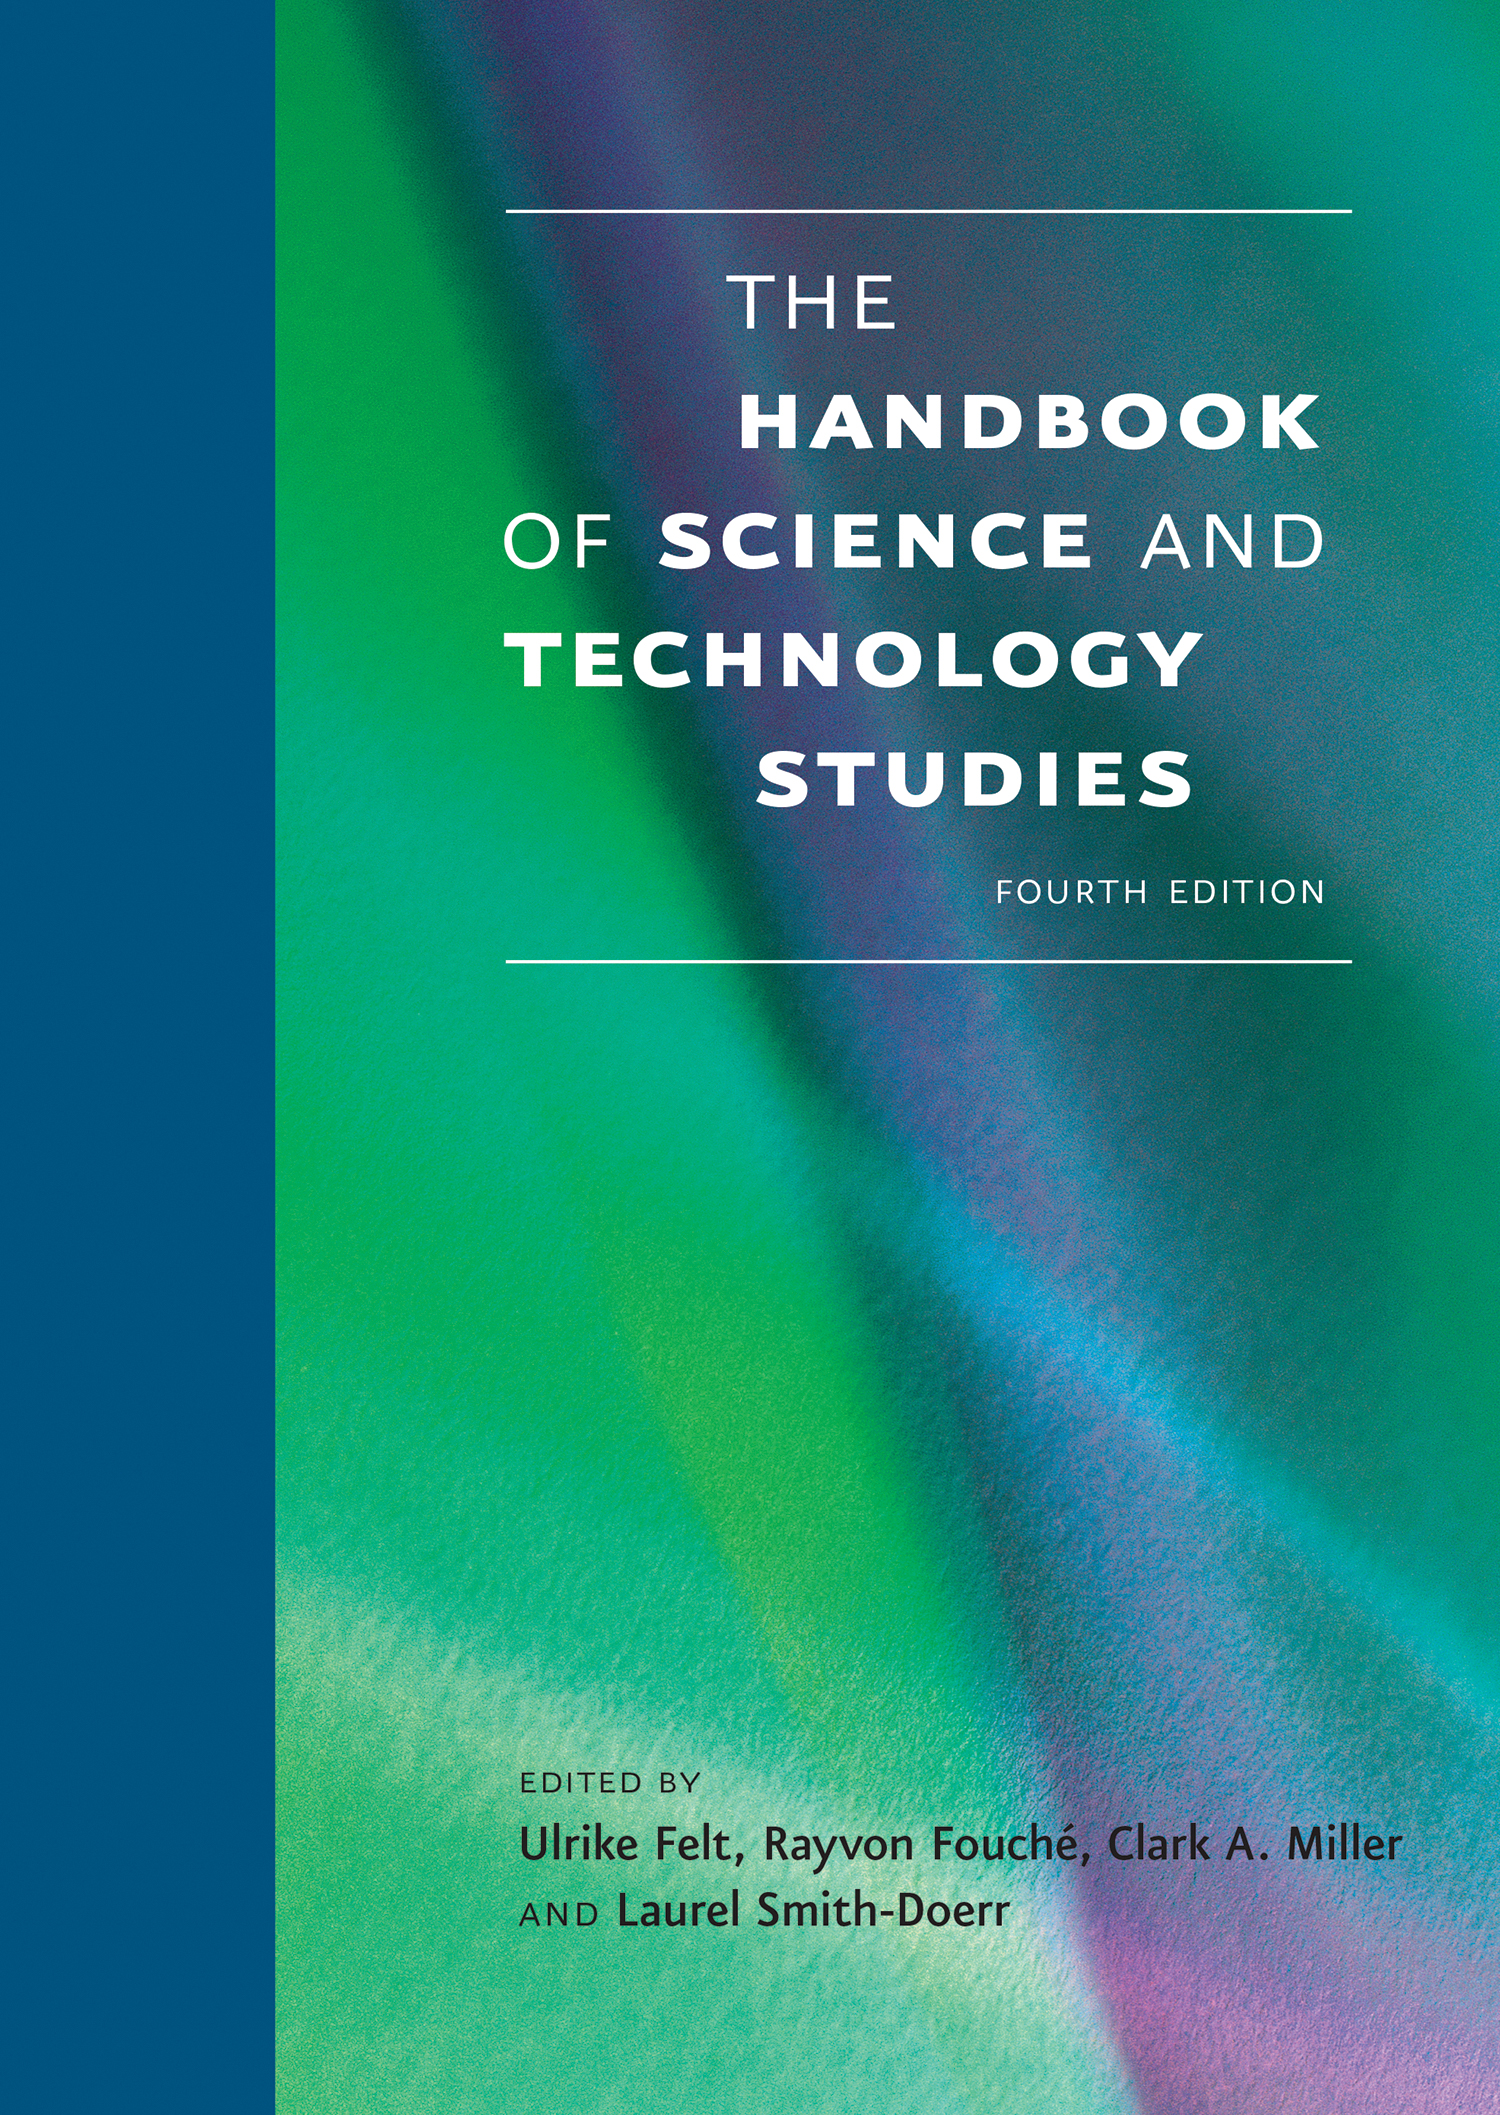 Handbook of Science and Technology Studies, 4th edition